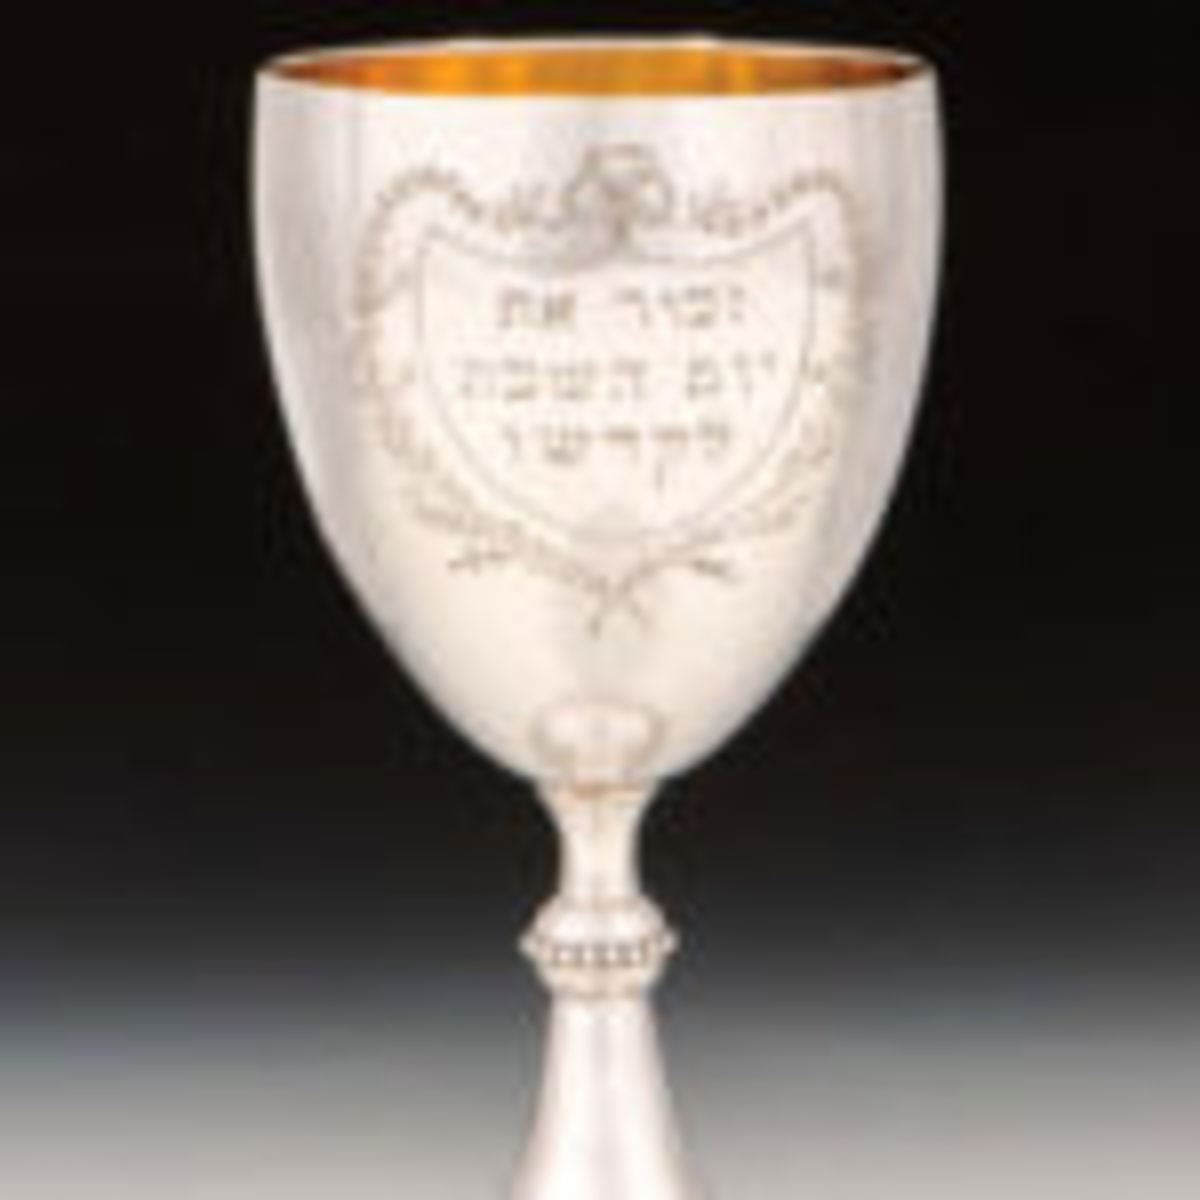 Kiddush Cup, probably by William Harrison I (active circa 1758-1781), London, England, circa 1775, silver (sterling) and gold, Museum Purchase, The Antique Collectors' Guild, 2016-1